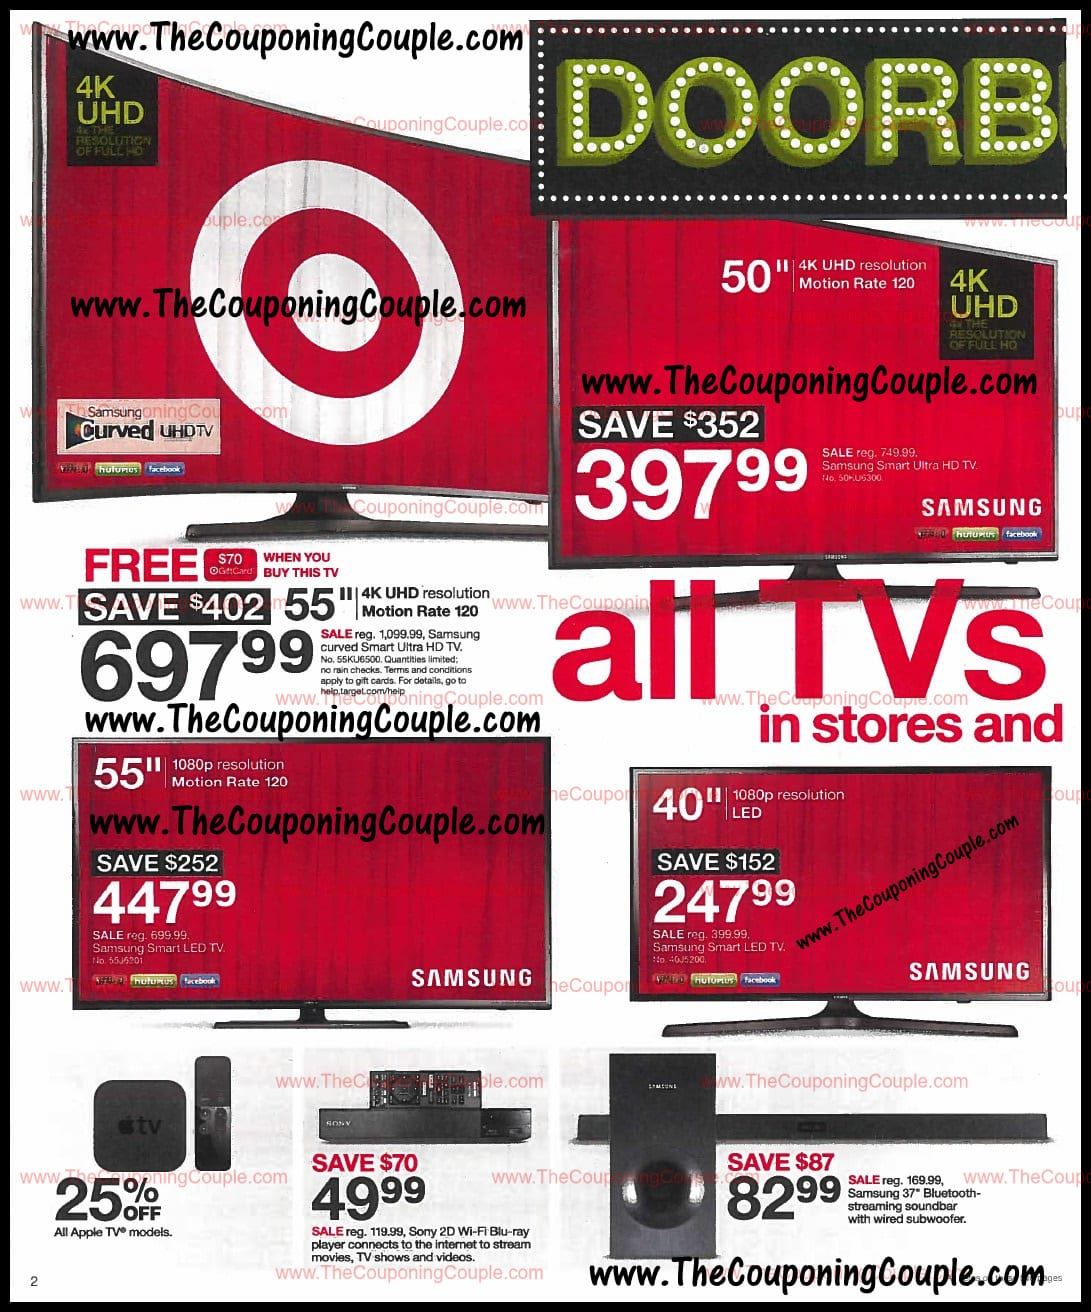 Deals at target with coupons